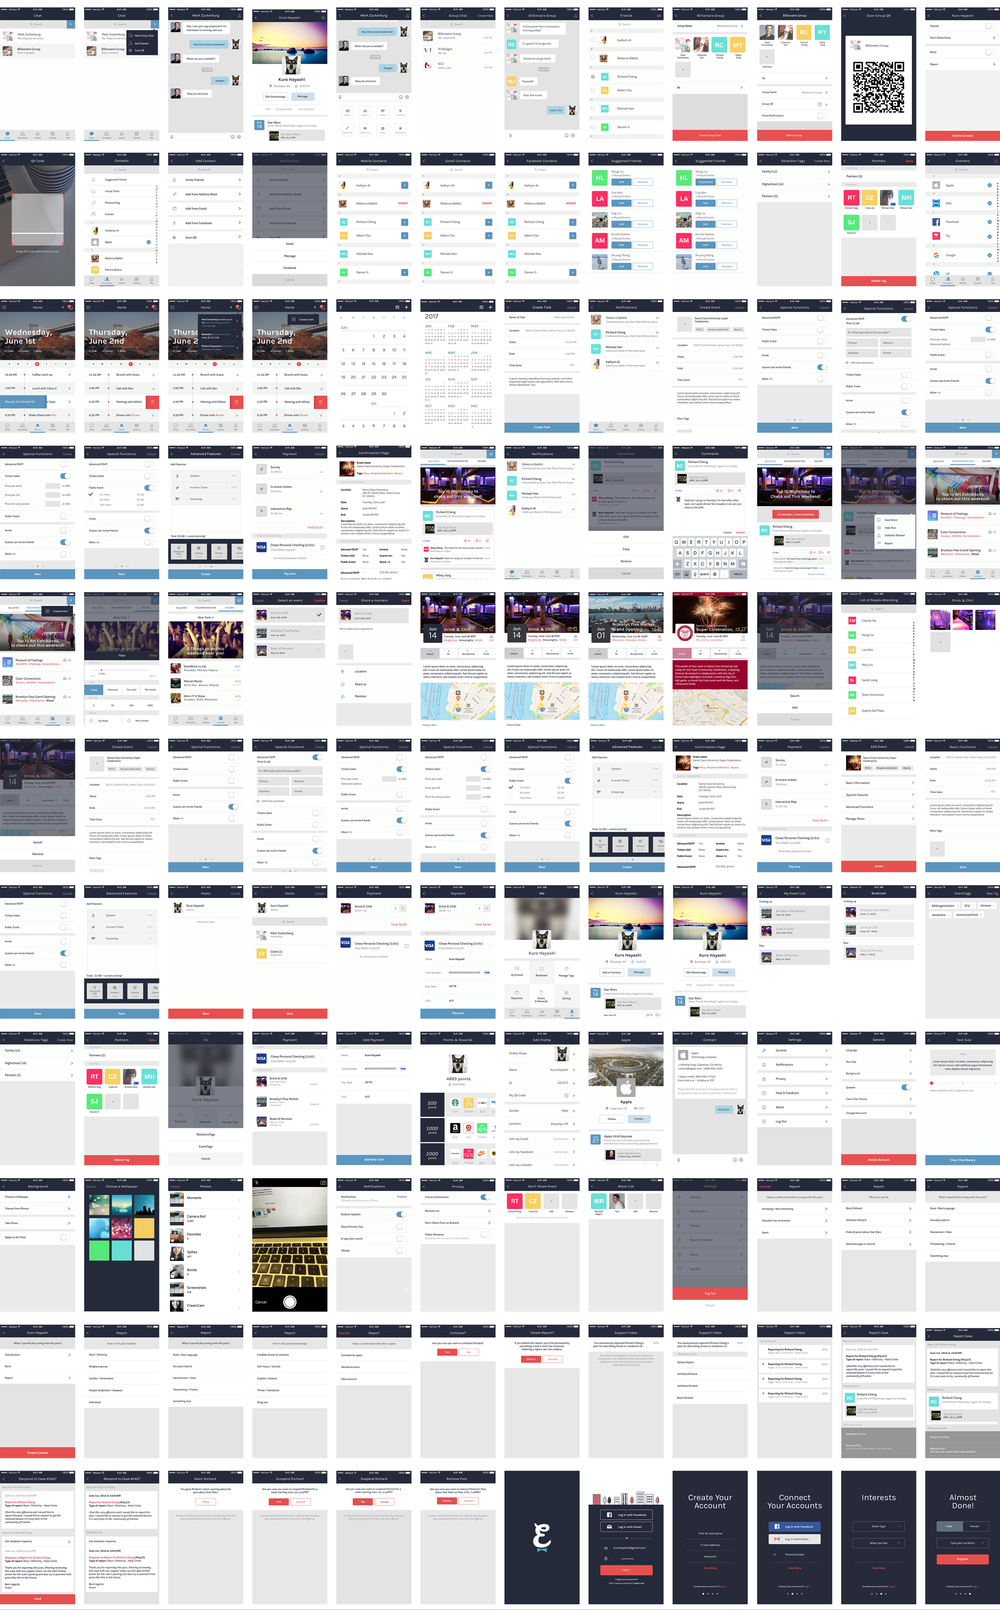 gracekuk-portfolio-eventer-casestudy-screens.png